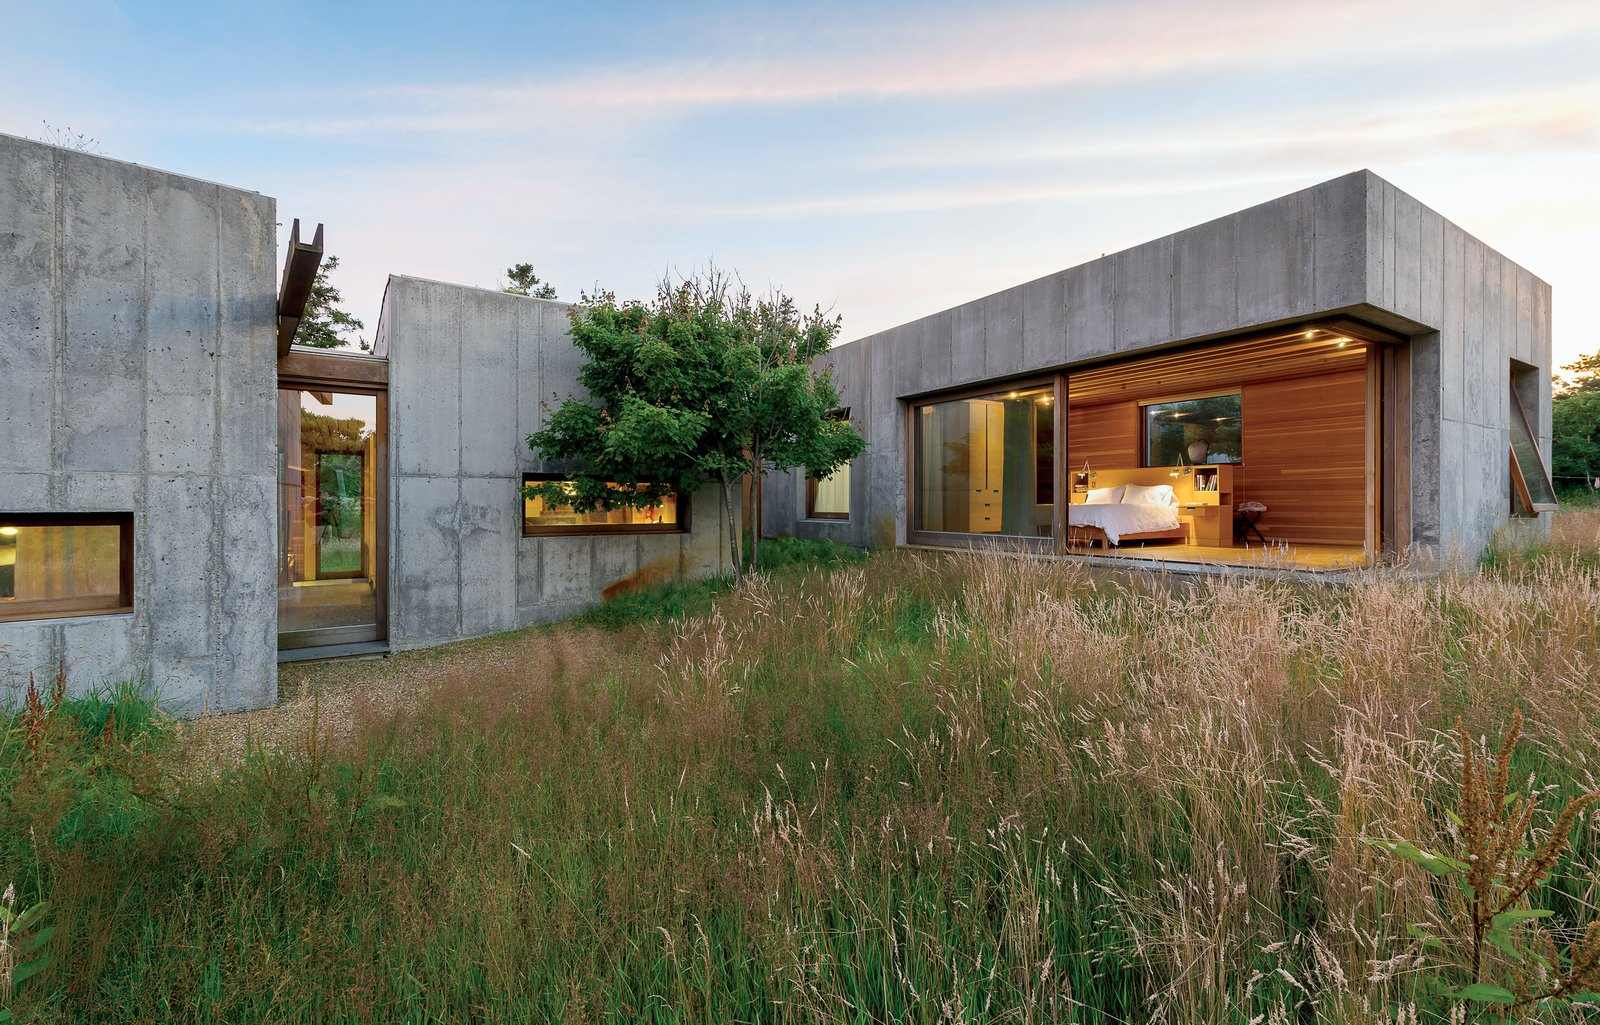 Best Kitchen Gallery: Six Concrete Boxes Make A Jaw Dropping Martha's Vineyard Home Dwell of Underground Concrete Home Cost on rachelxblog.com